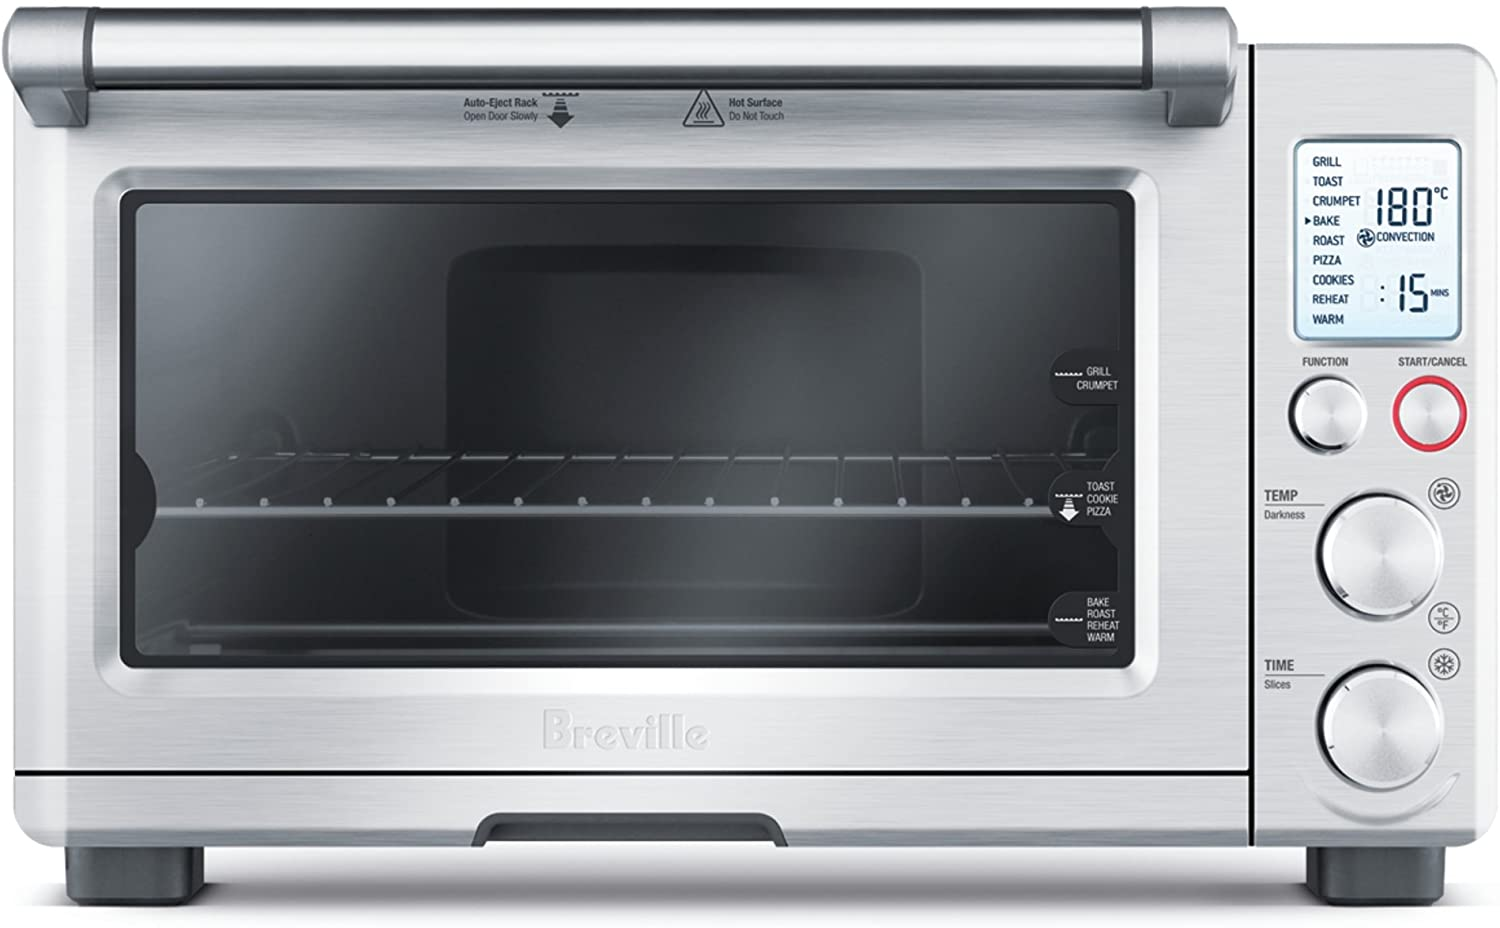 2. Breville Smart Oven Convection Toaster Oven